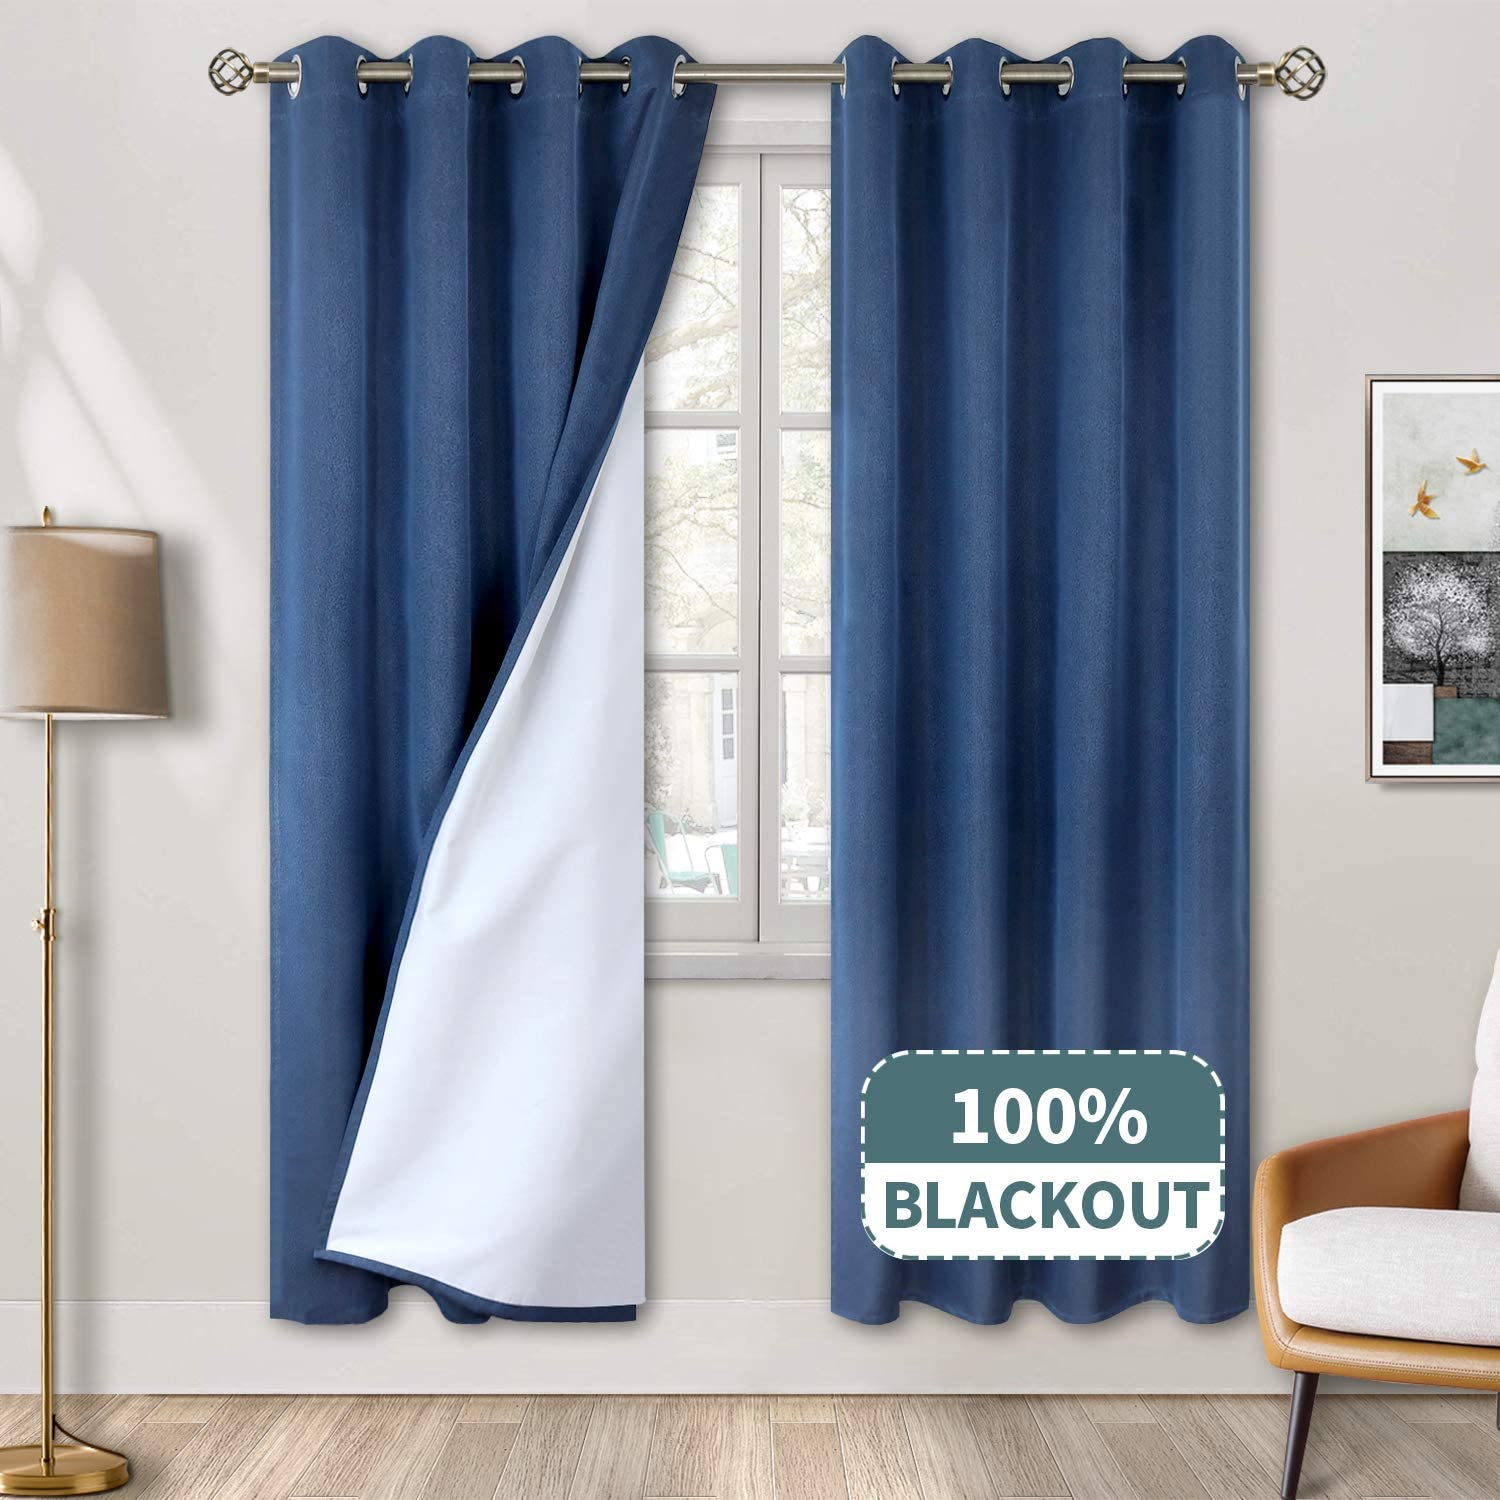 Max 79% OFF BGment 100% Blackout Curtains for Bedroom Jacquard NEW before selling ☆ Grommet Ther